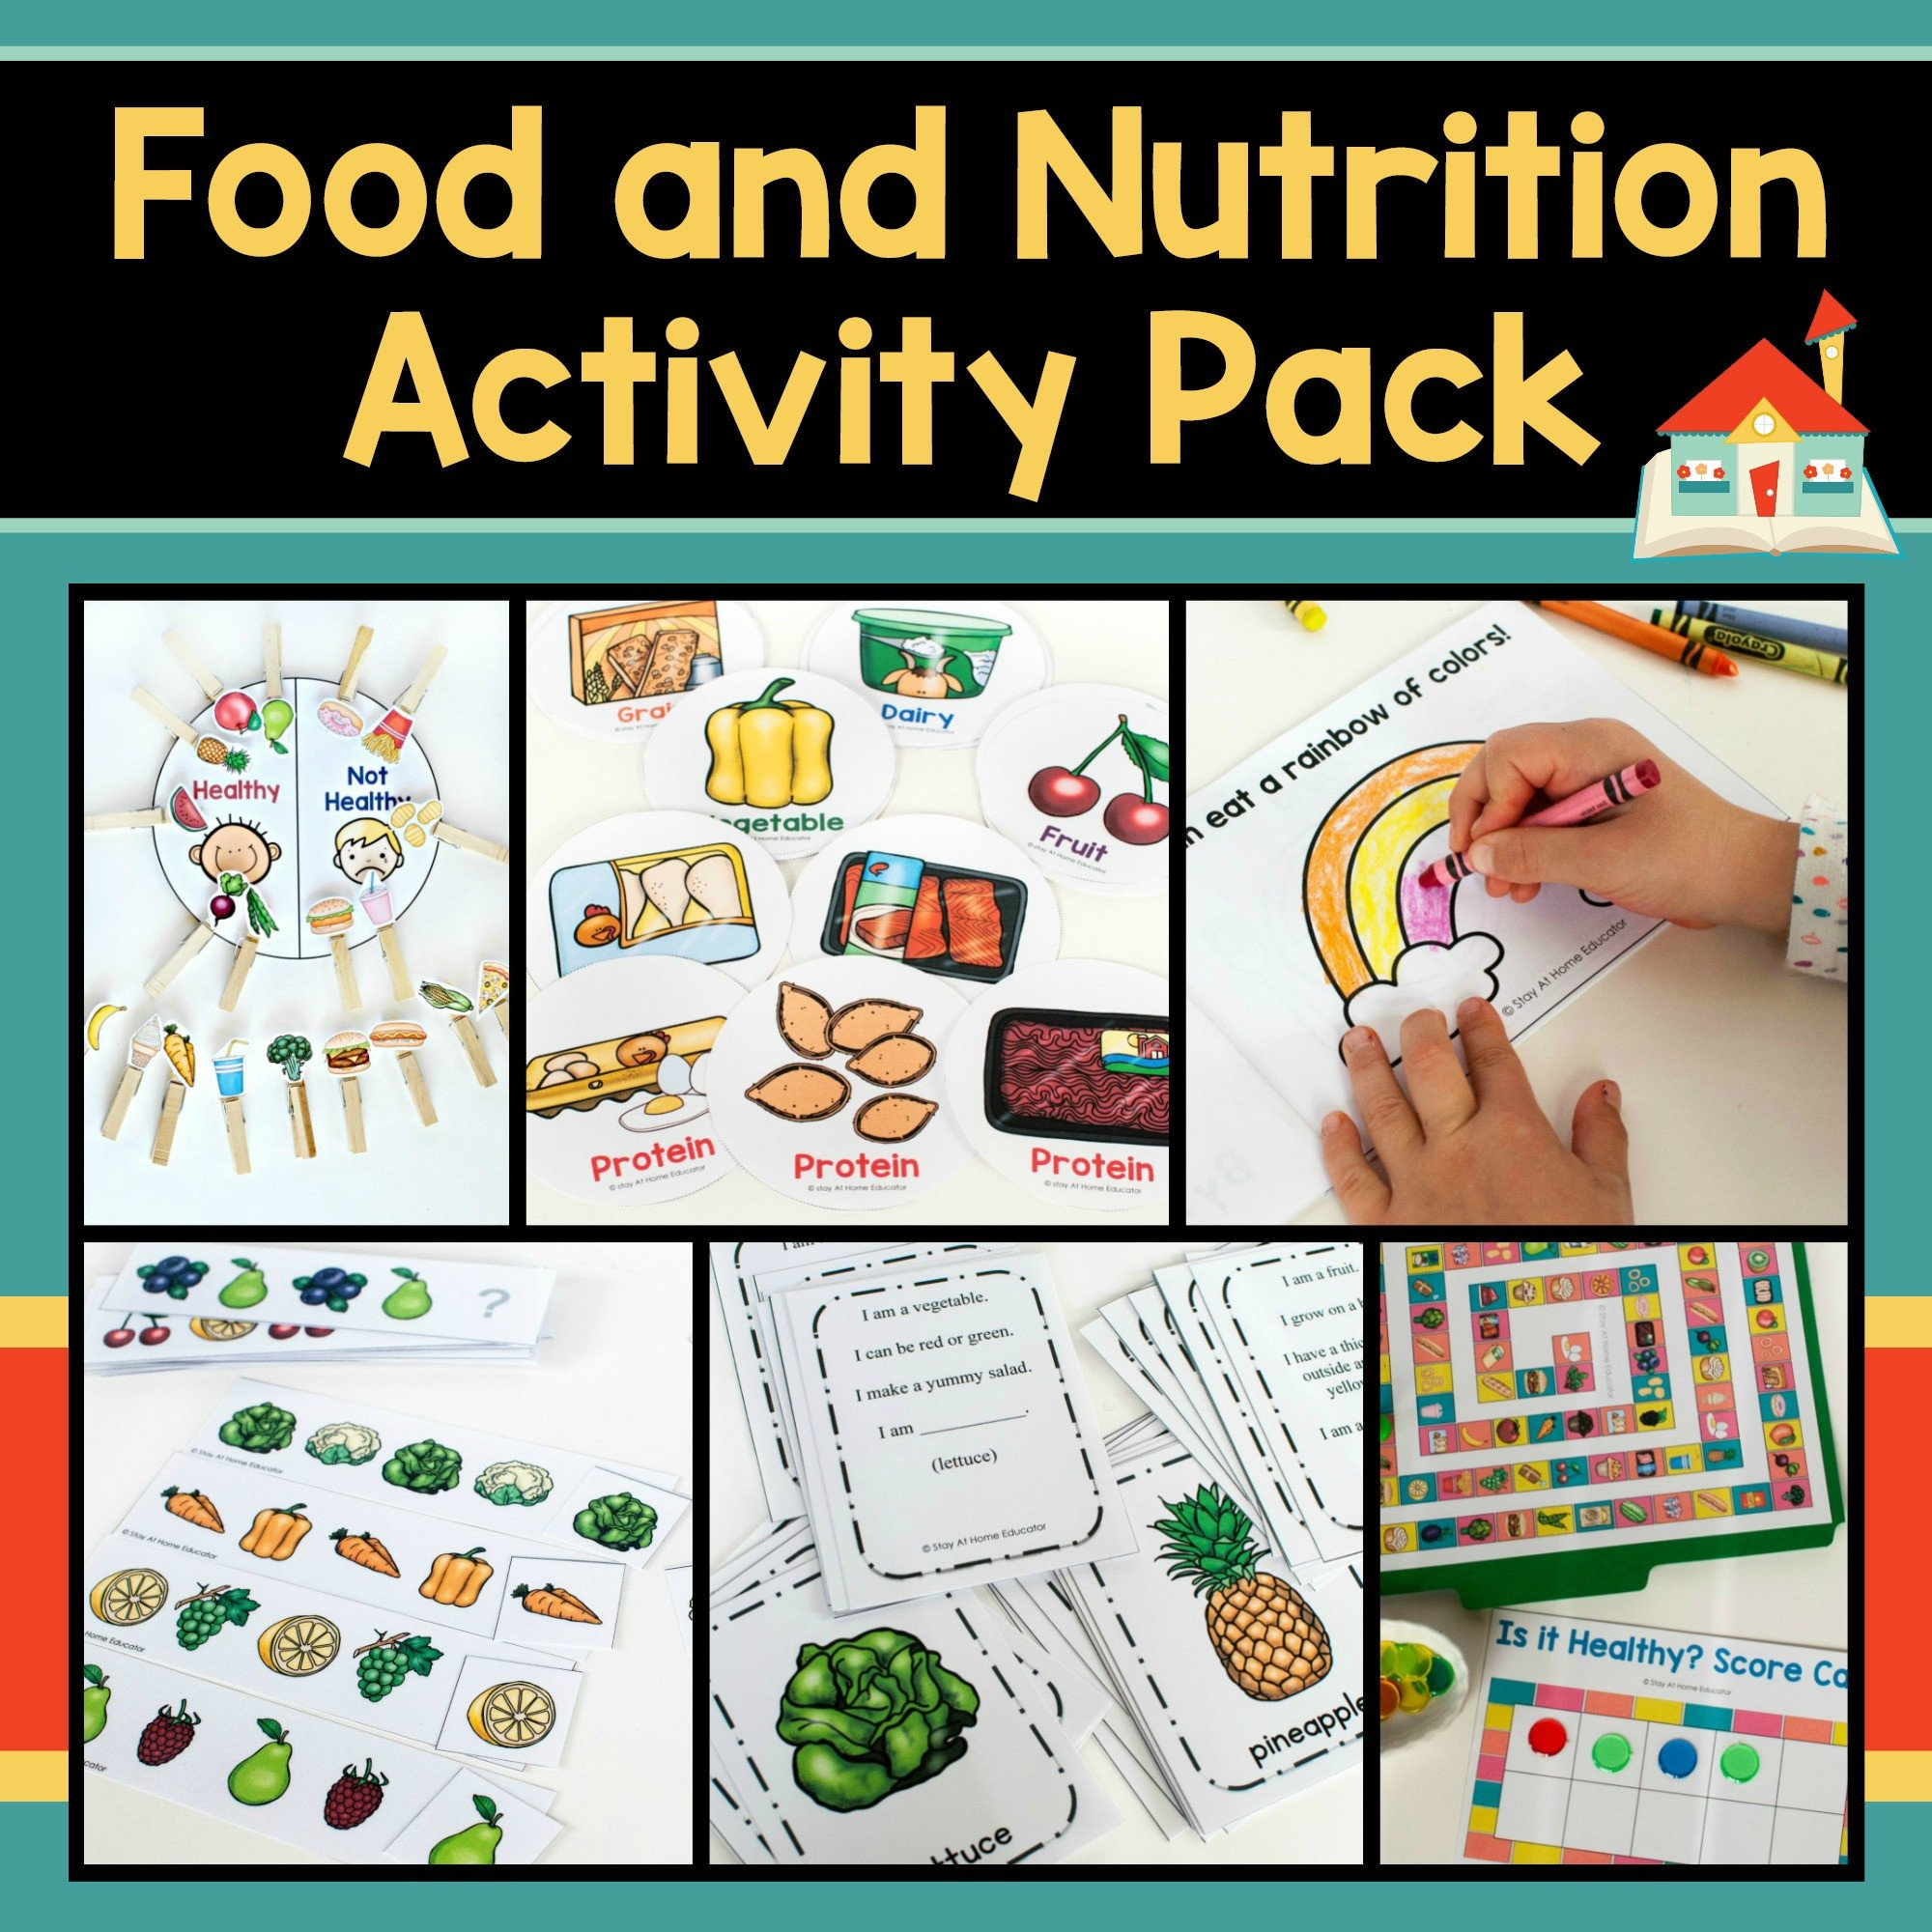 Food and Nutrition Activity Pack Cover